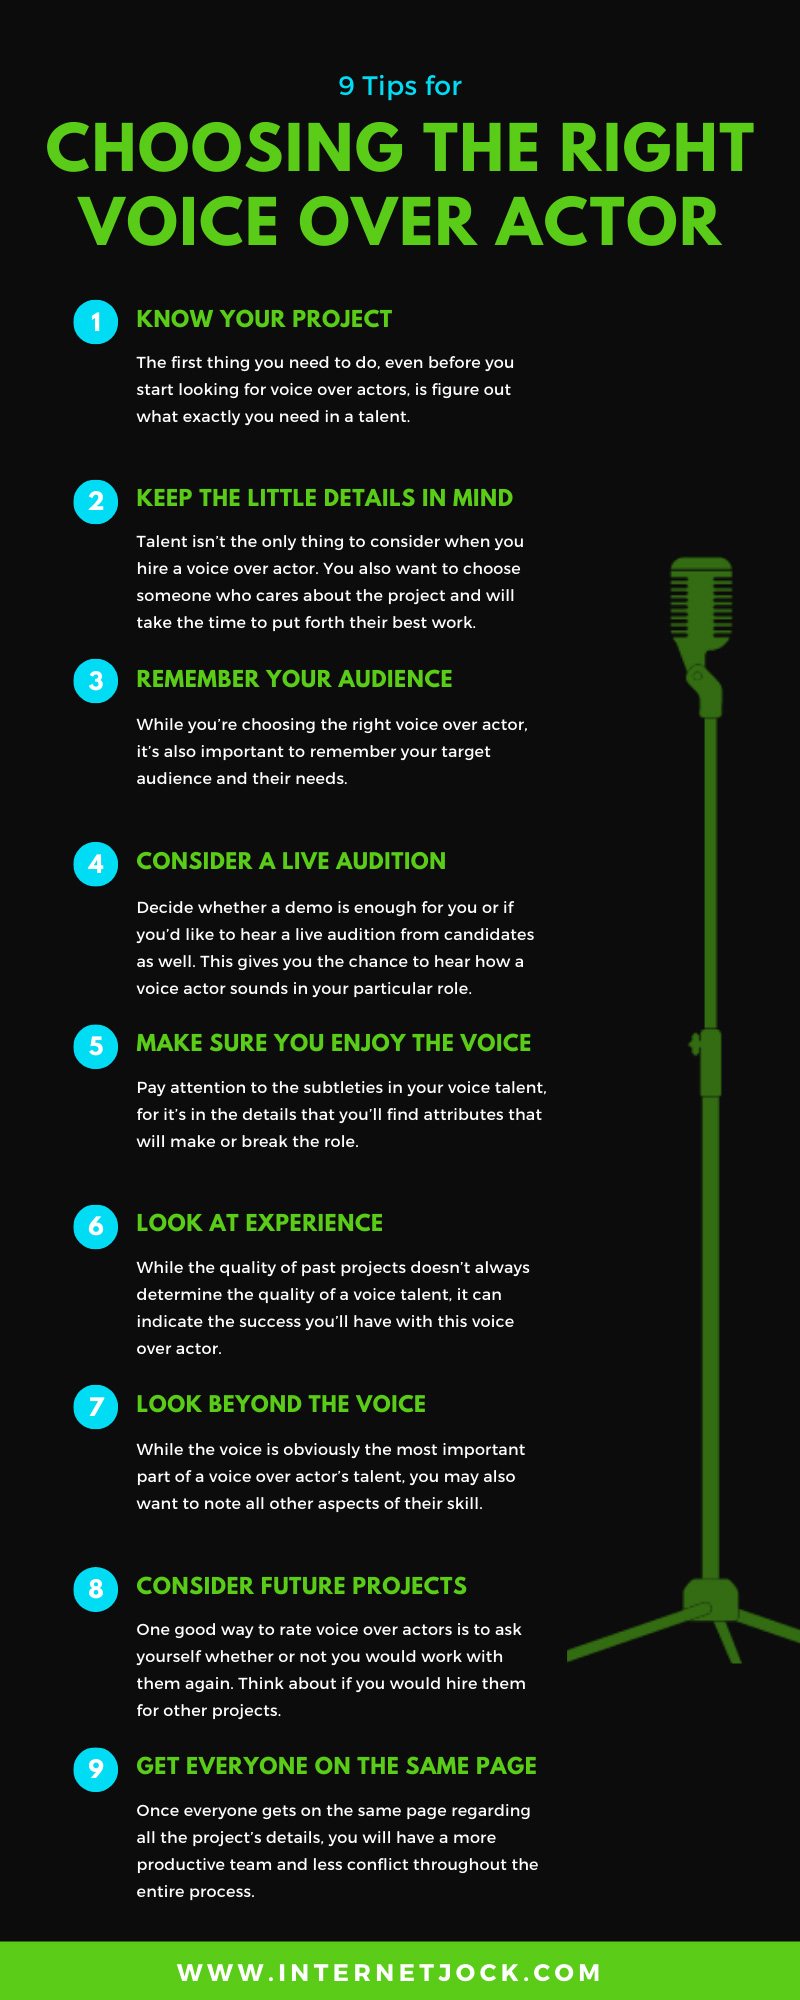 9 Tips for Choosing the Right Voice Over Actor infographic